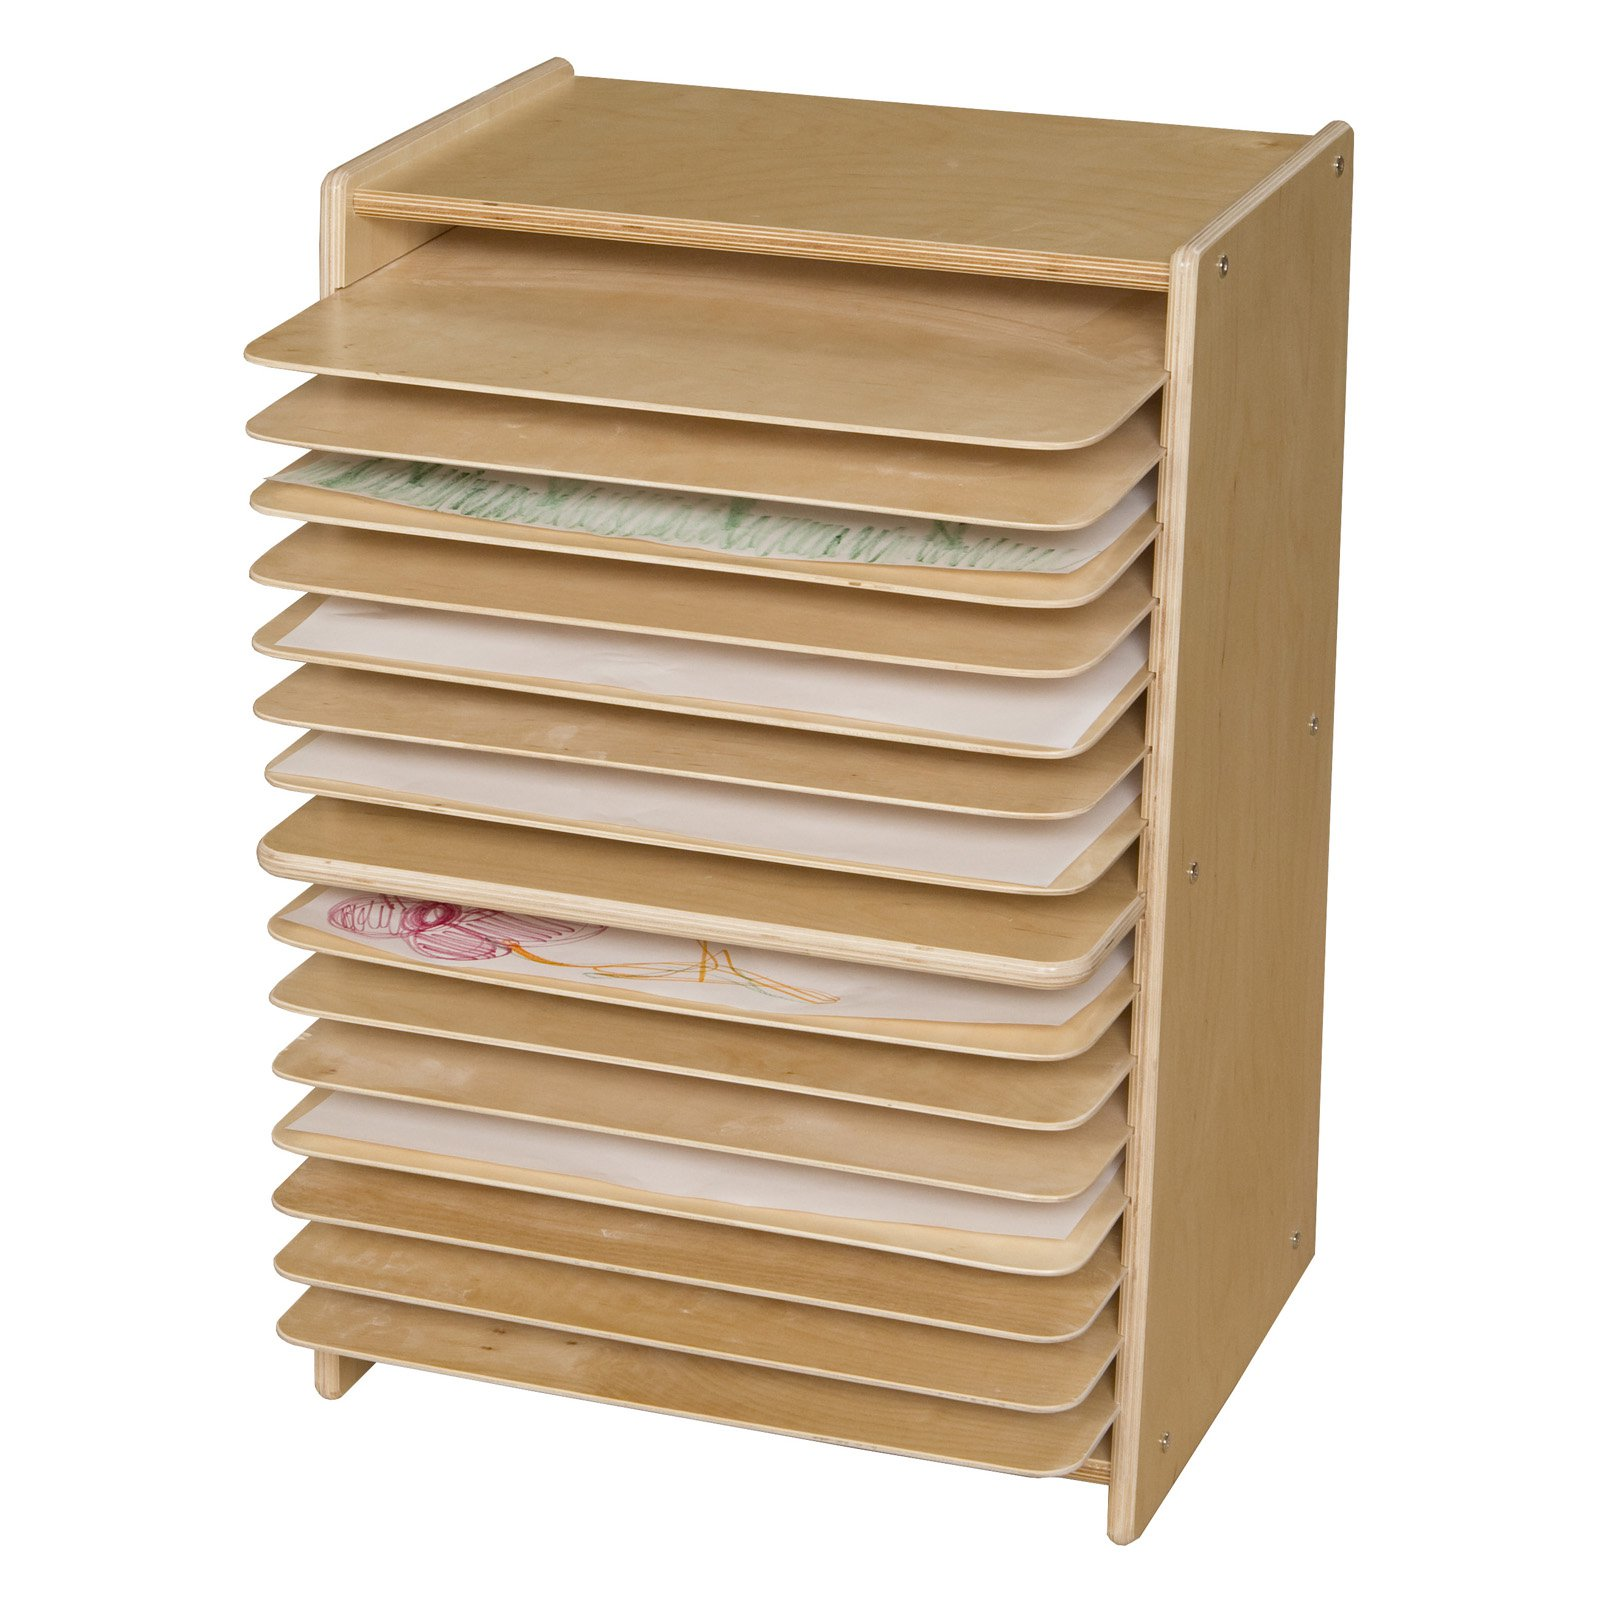 Wood Designs Contender Mobile Drying and Storage Rack